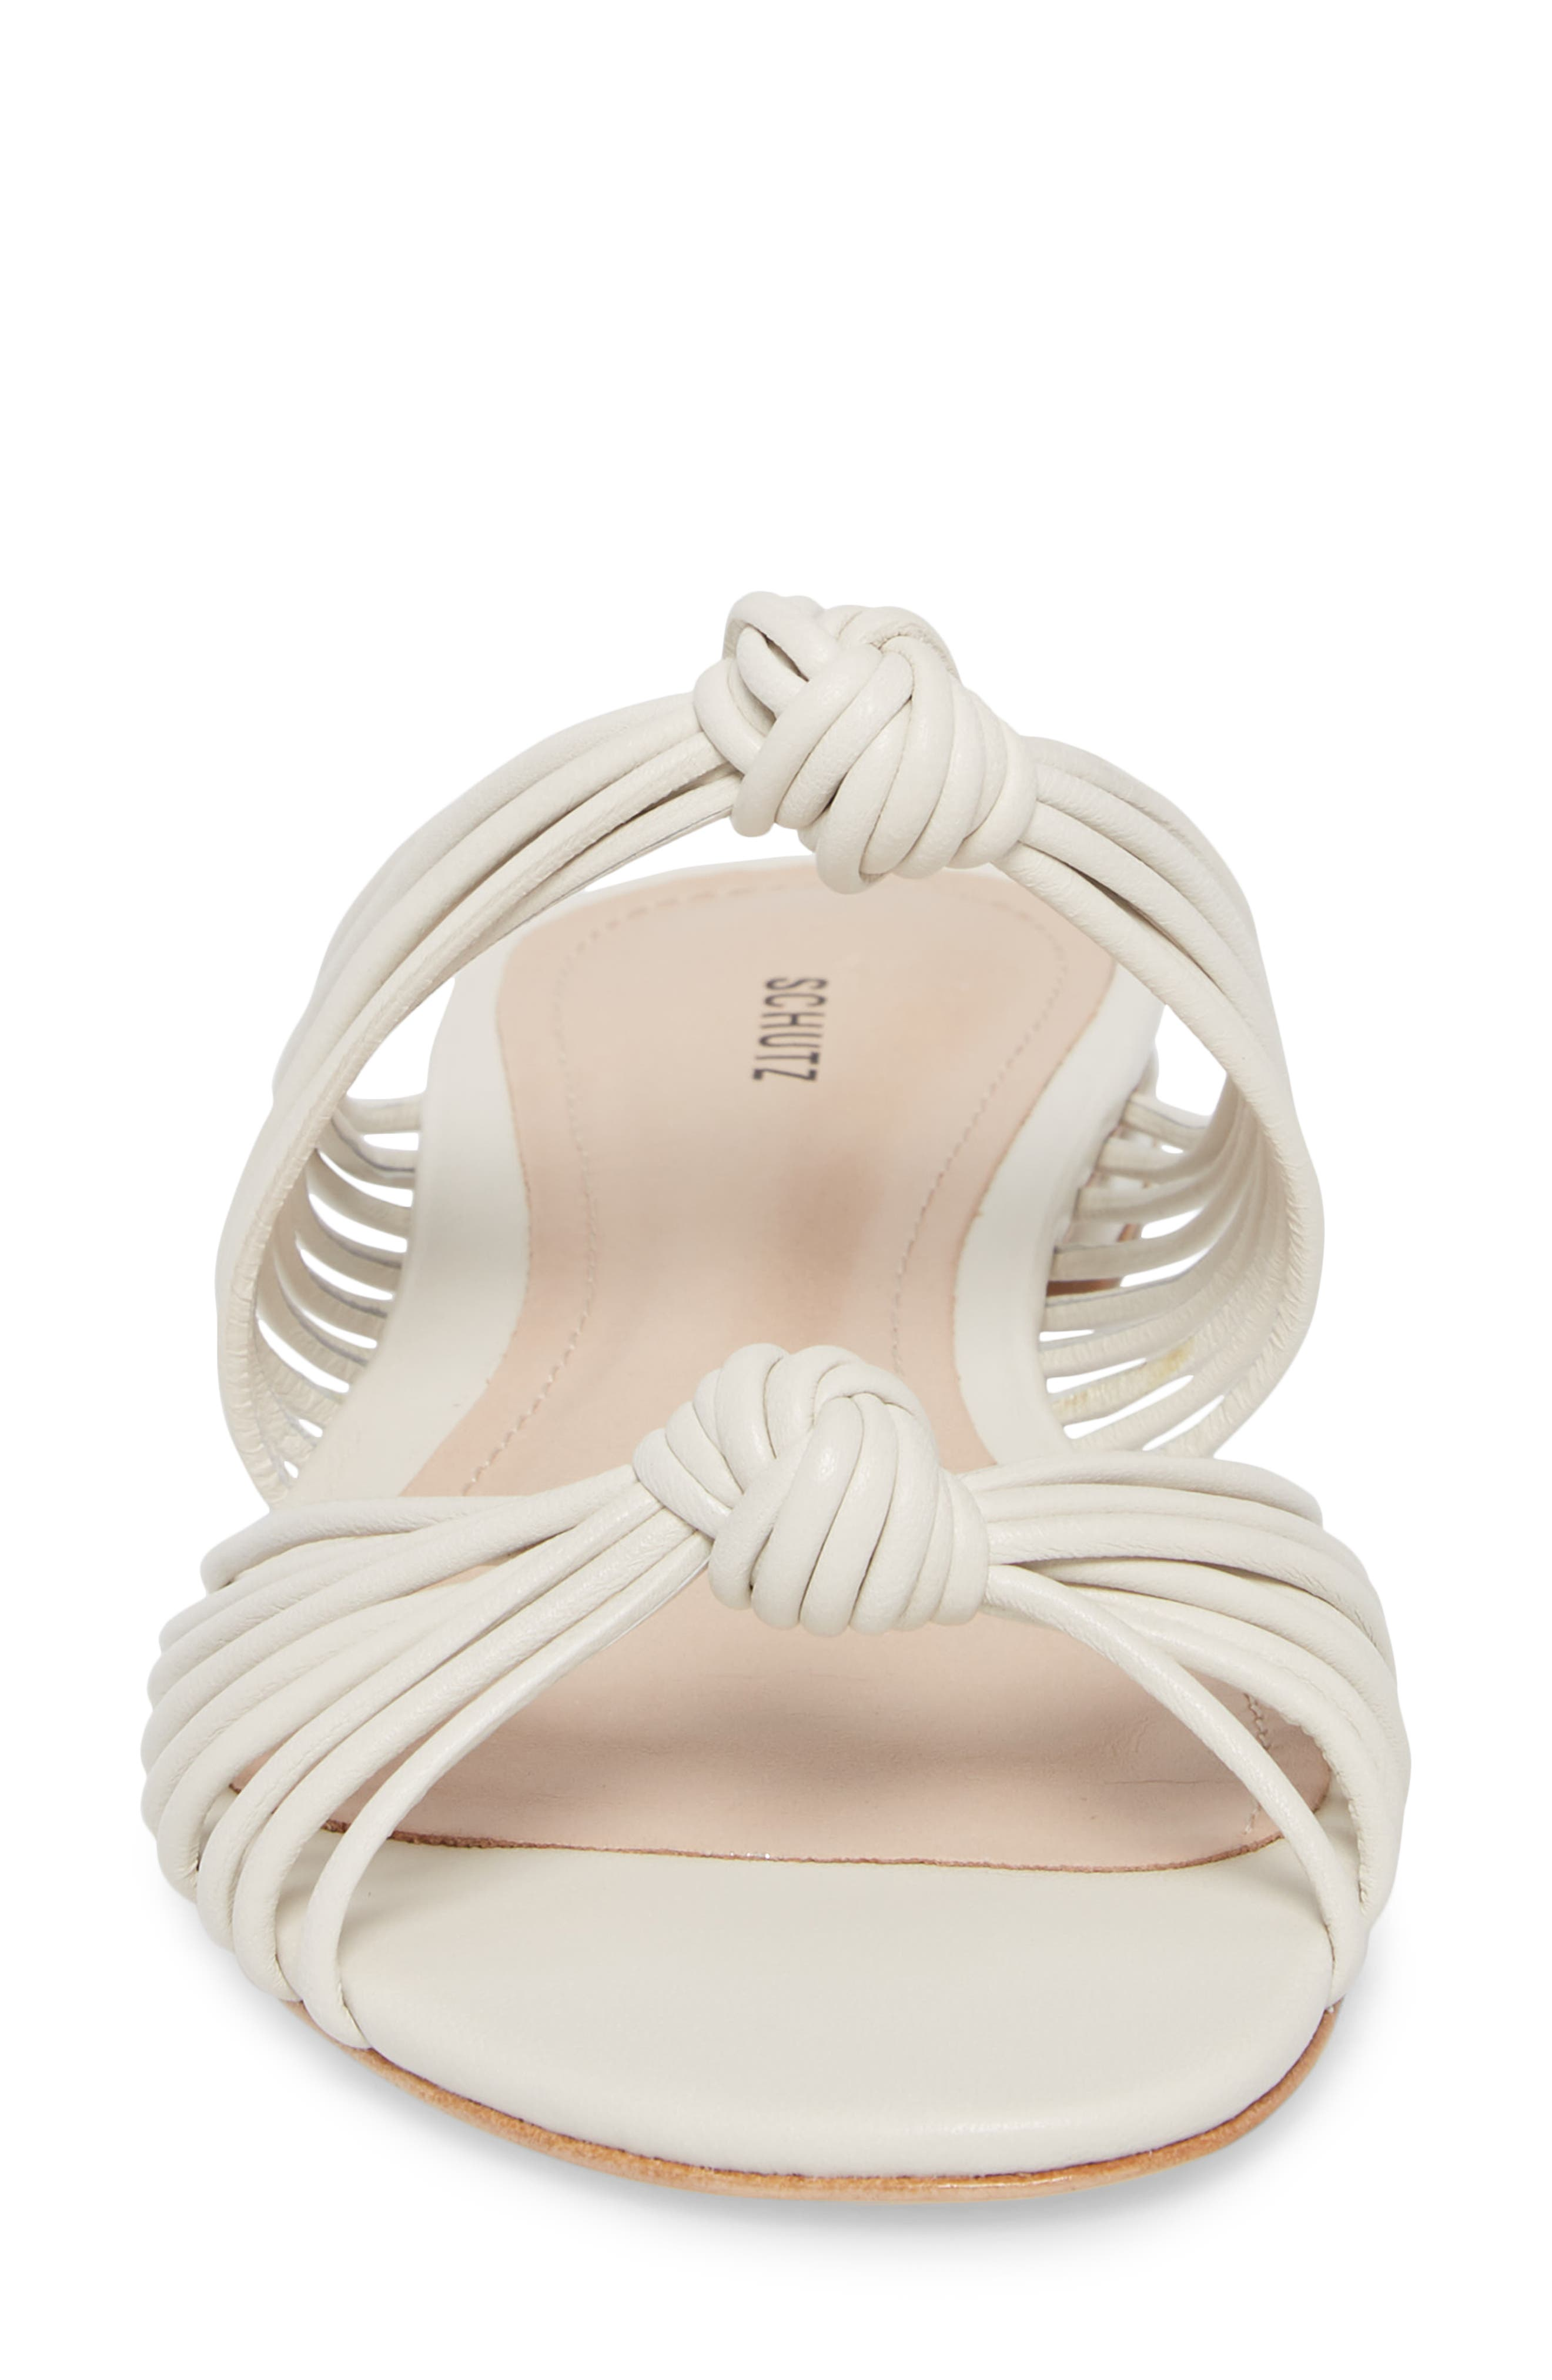 Nitiely Slide Sandal,                             Alternate thumbnail 4, color,                             Pearl Fabric